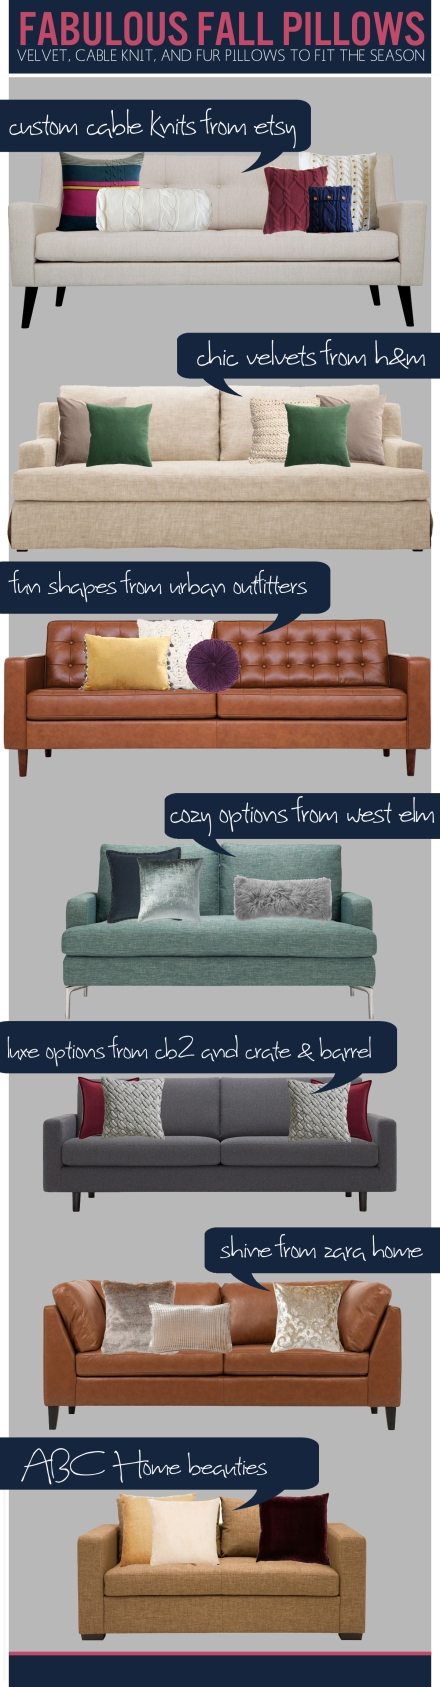 7 Sources for Fabulous Fall Pillows | www.theanatomyofdesign.com